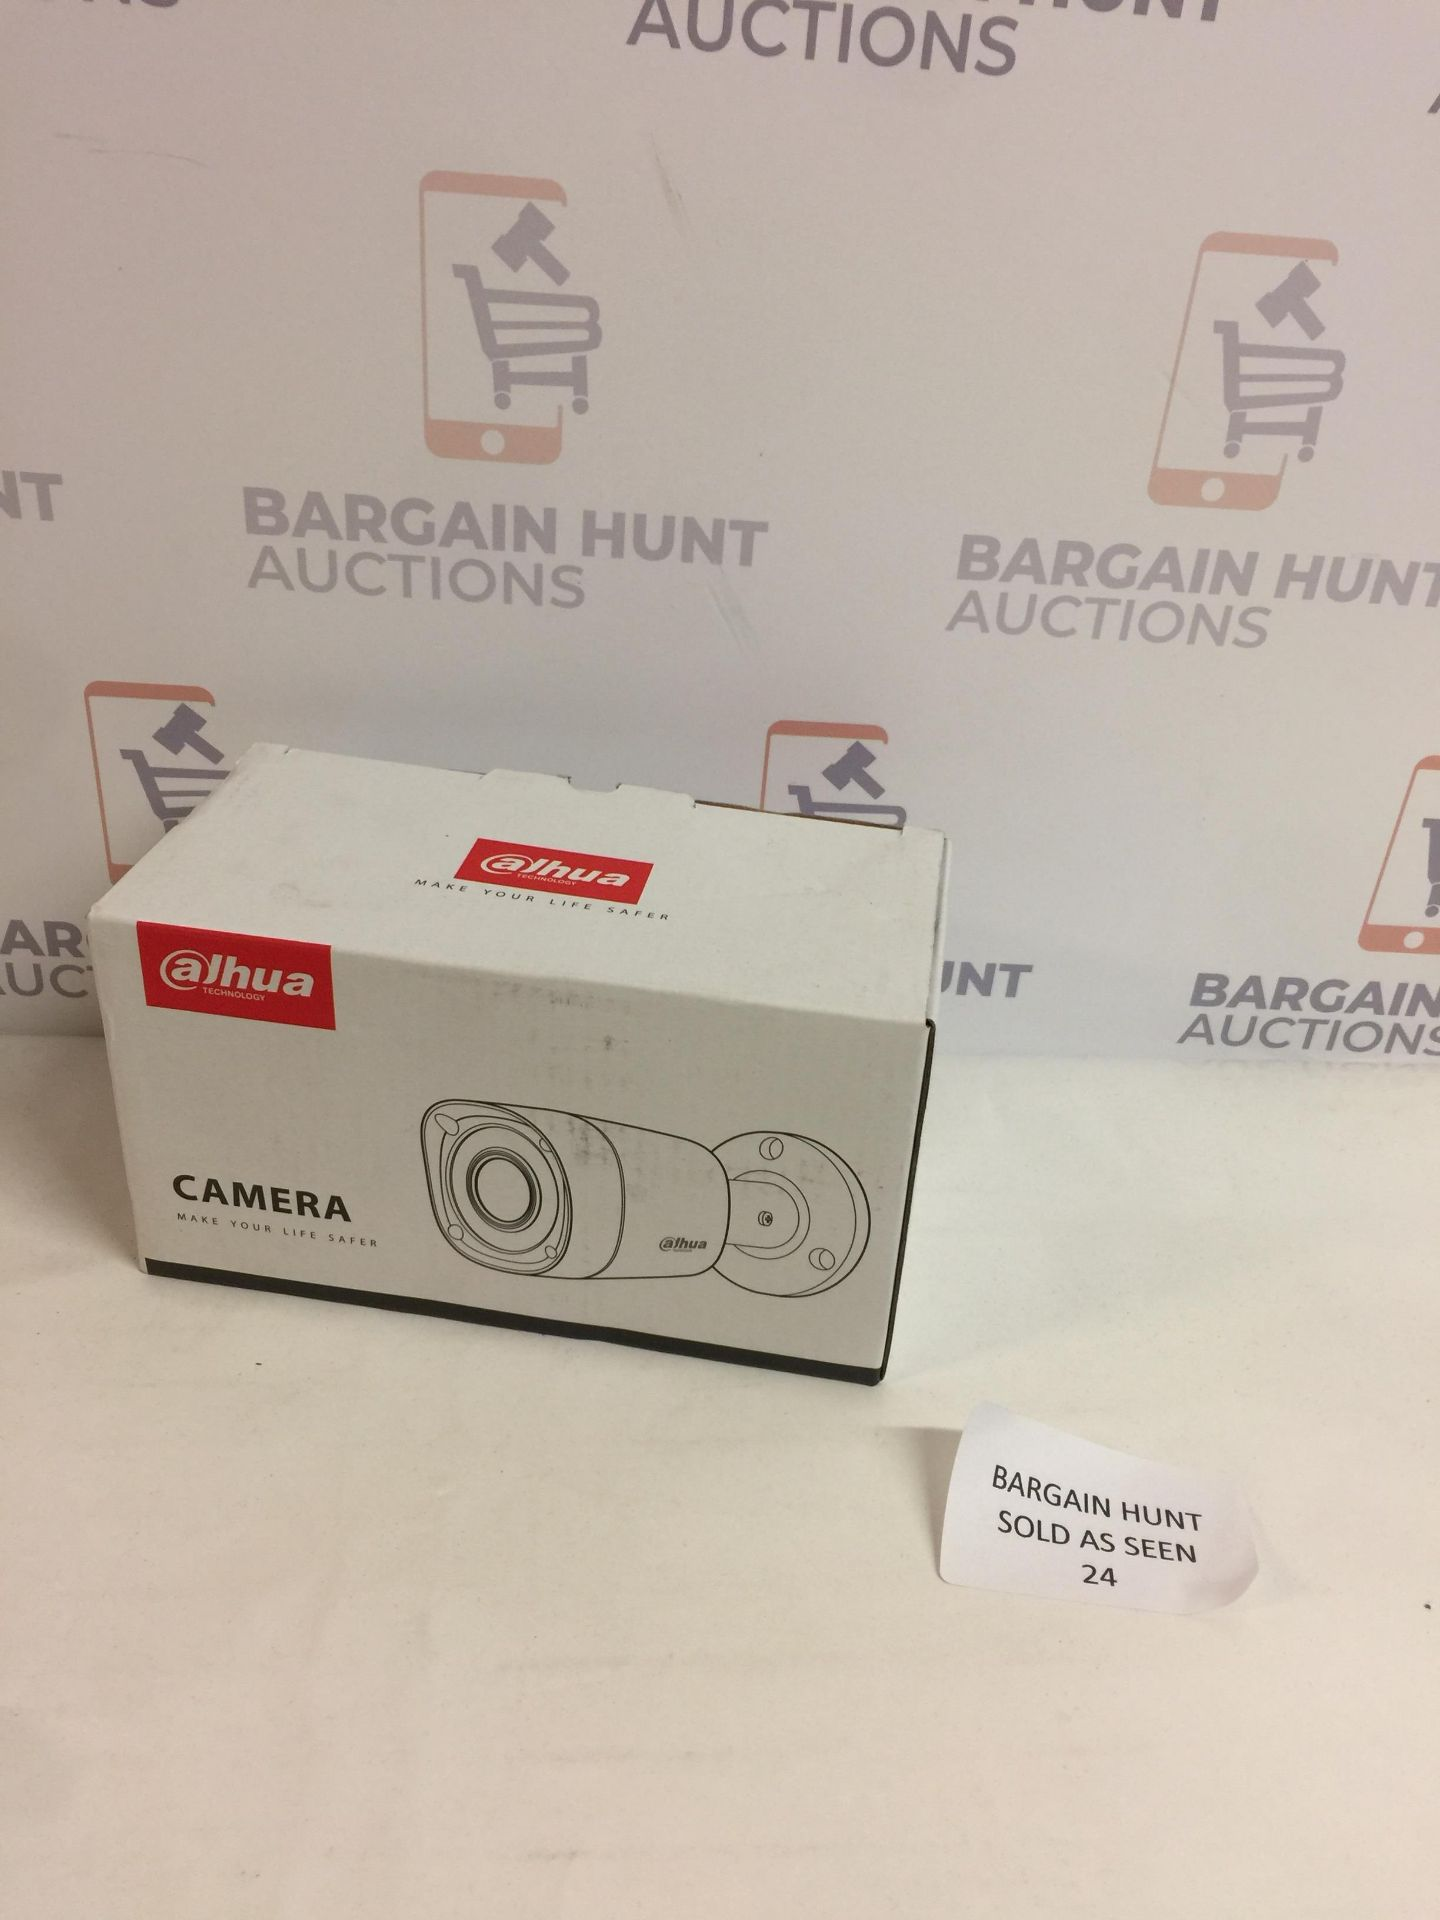 Lot 24 - Dahua hac-hfw1220rm-s3 Outdoor Bullet Camera 4 in 1 Series Cannon with IR Illumination